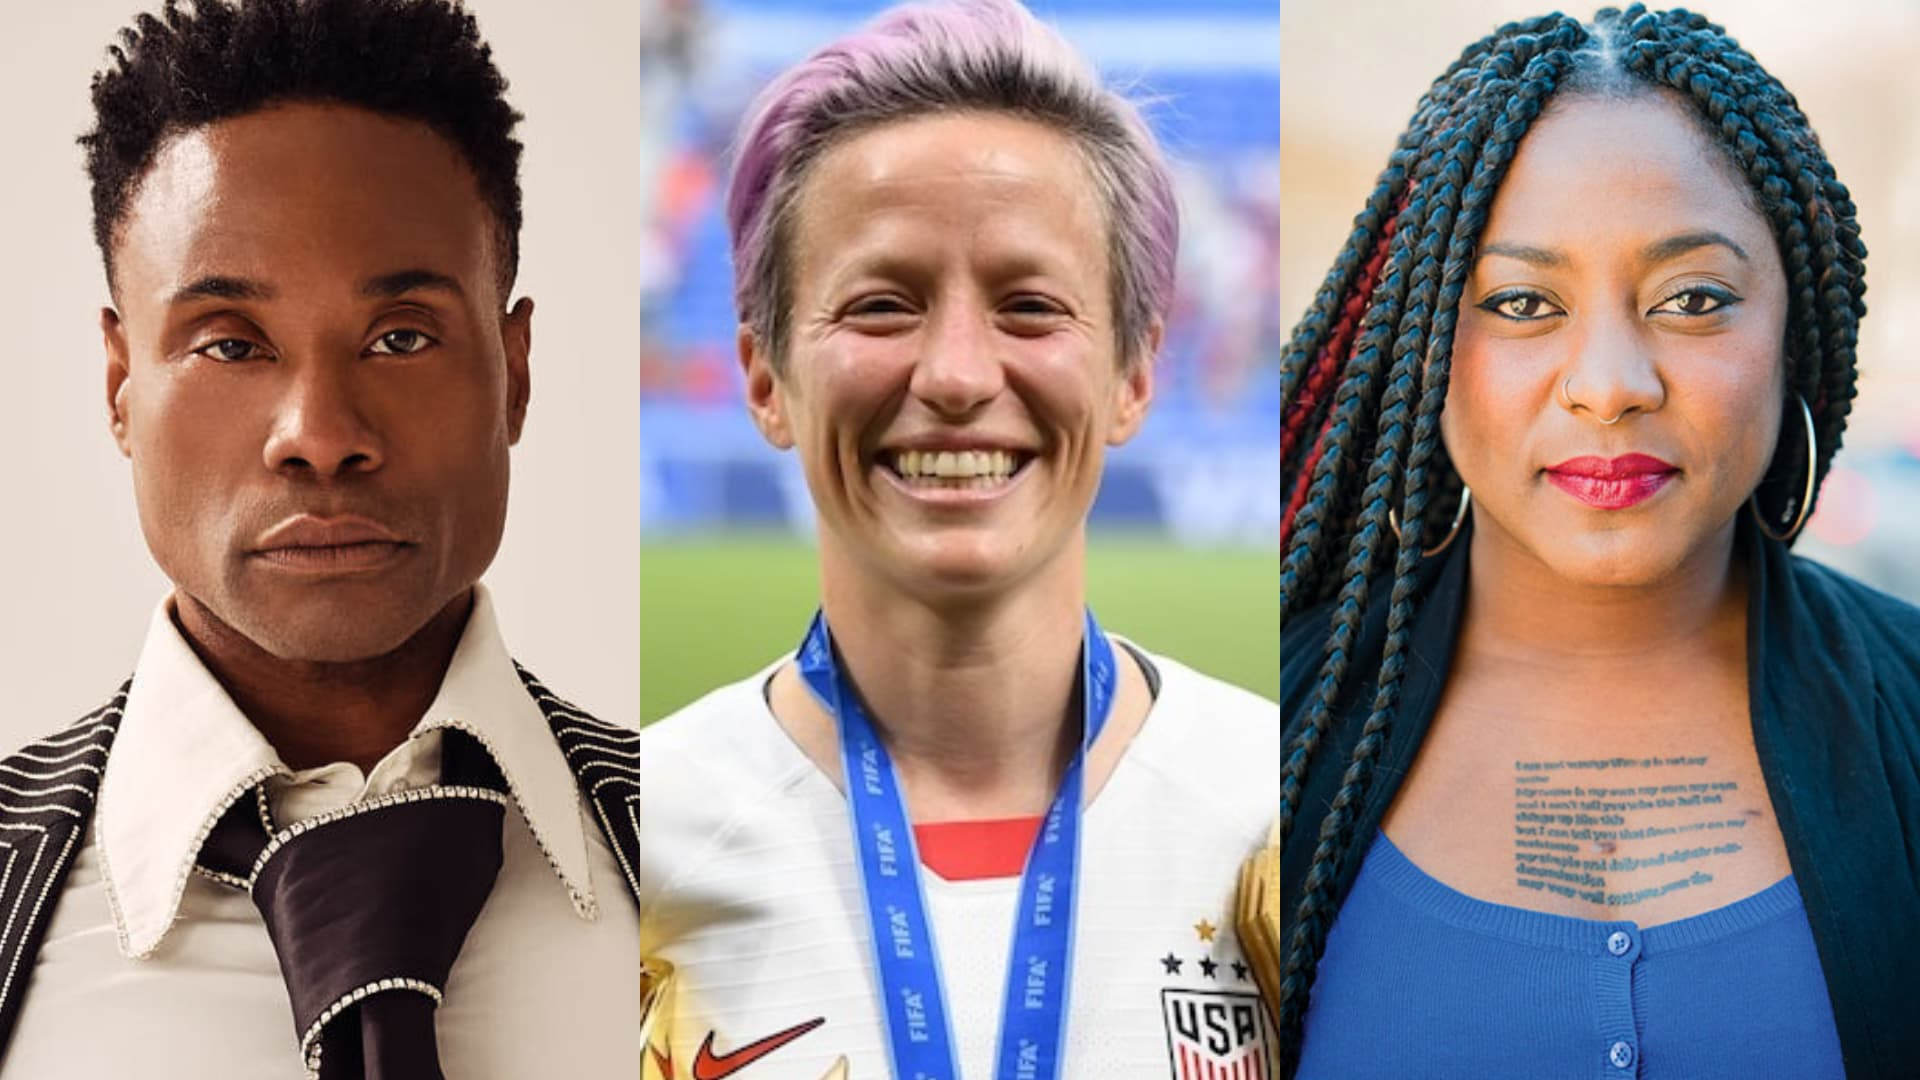 Billy Porter, Megan Rapinoe, Alicia Garza, time 100, lgbtq, icon, chase strangio, black lives matter